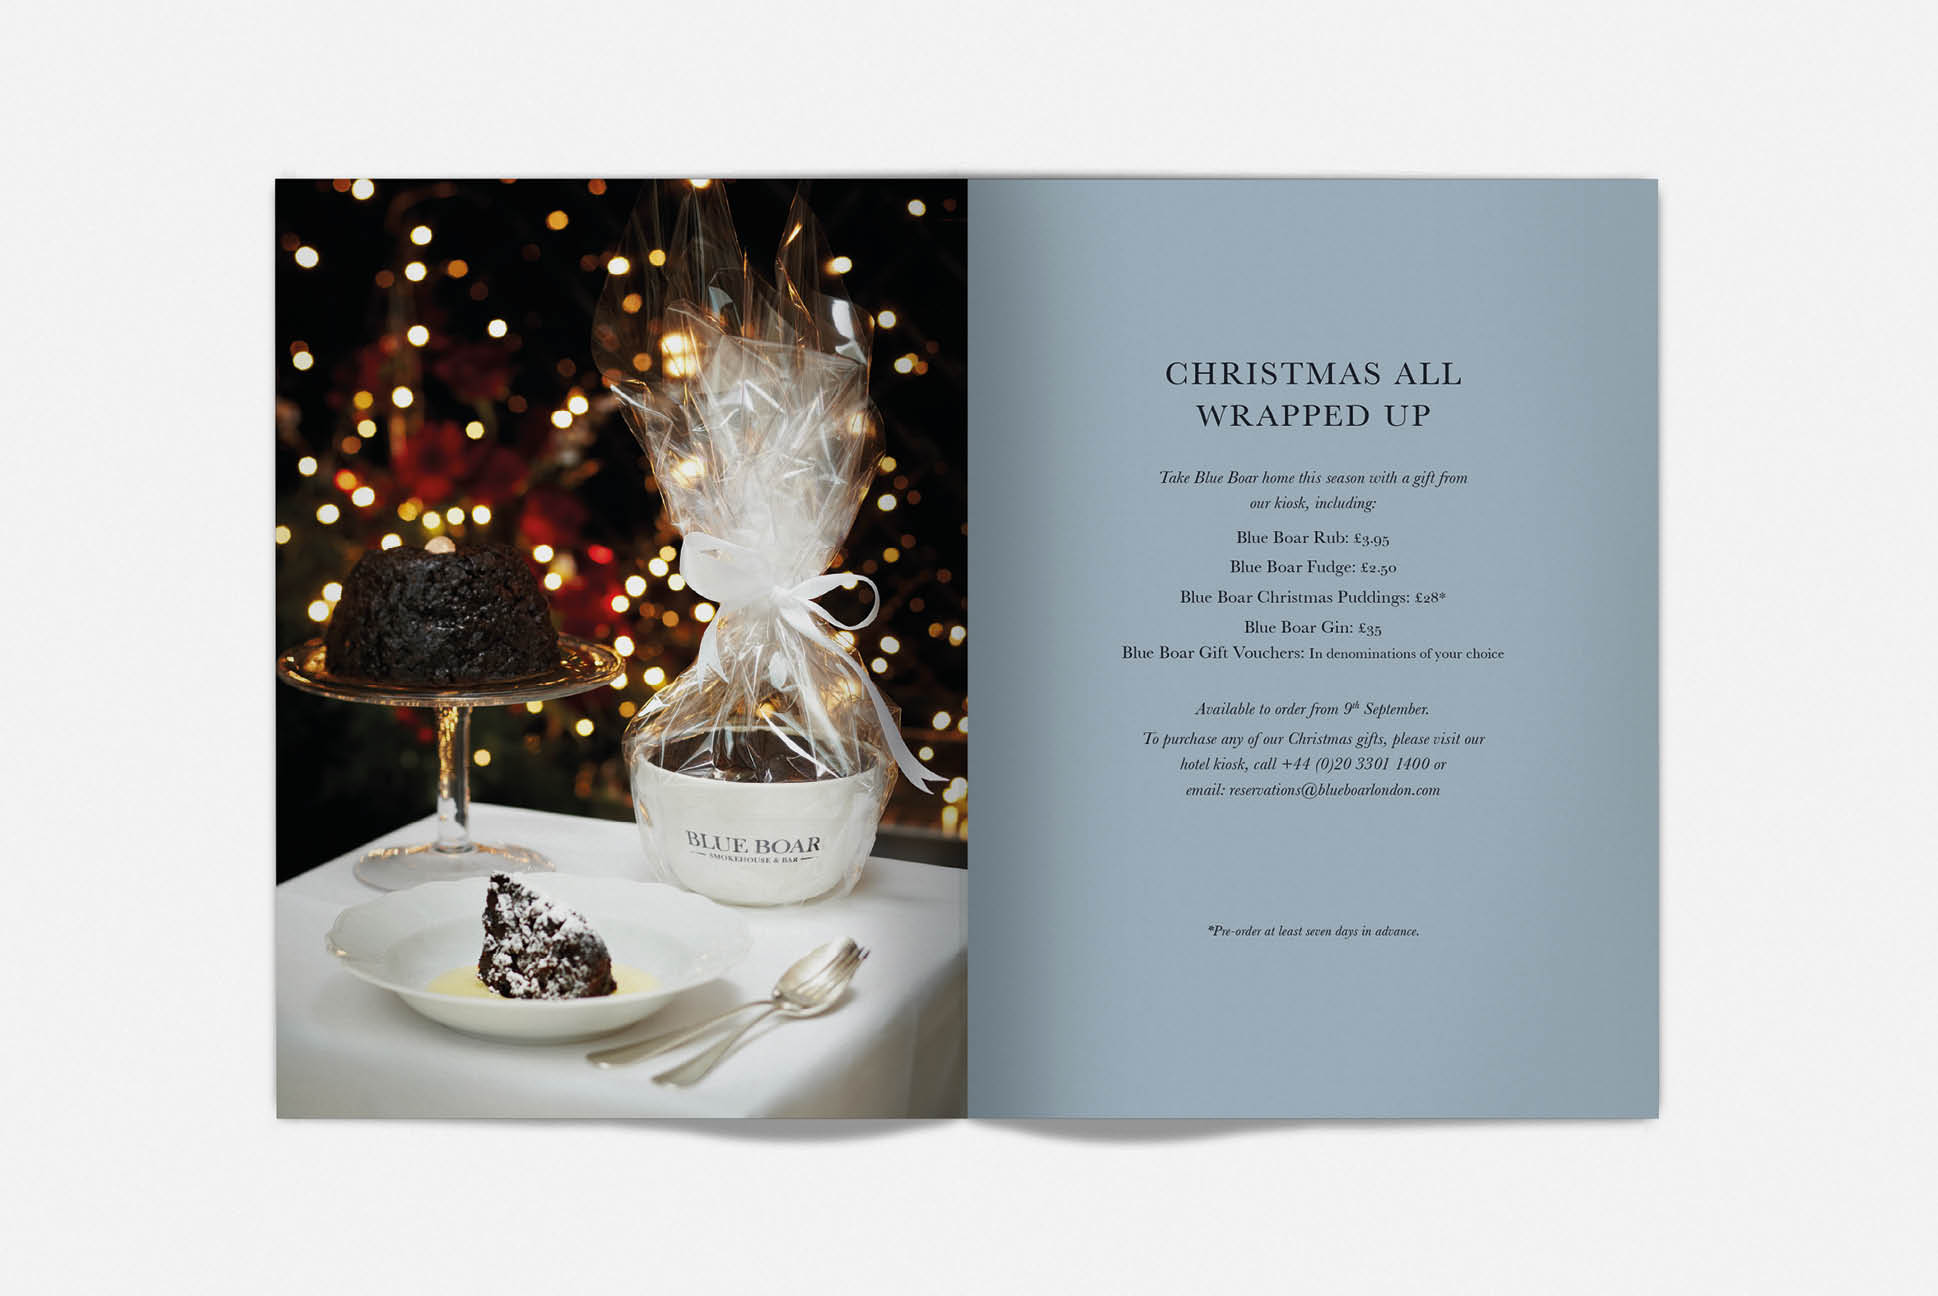 Blue Boar Christmas brochure | Branding and Promotional Collateral - Independent Marketing | IM London | Restaurant Marketing in London